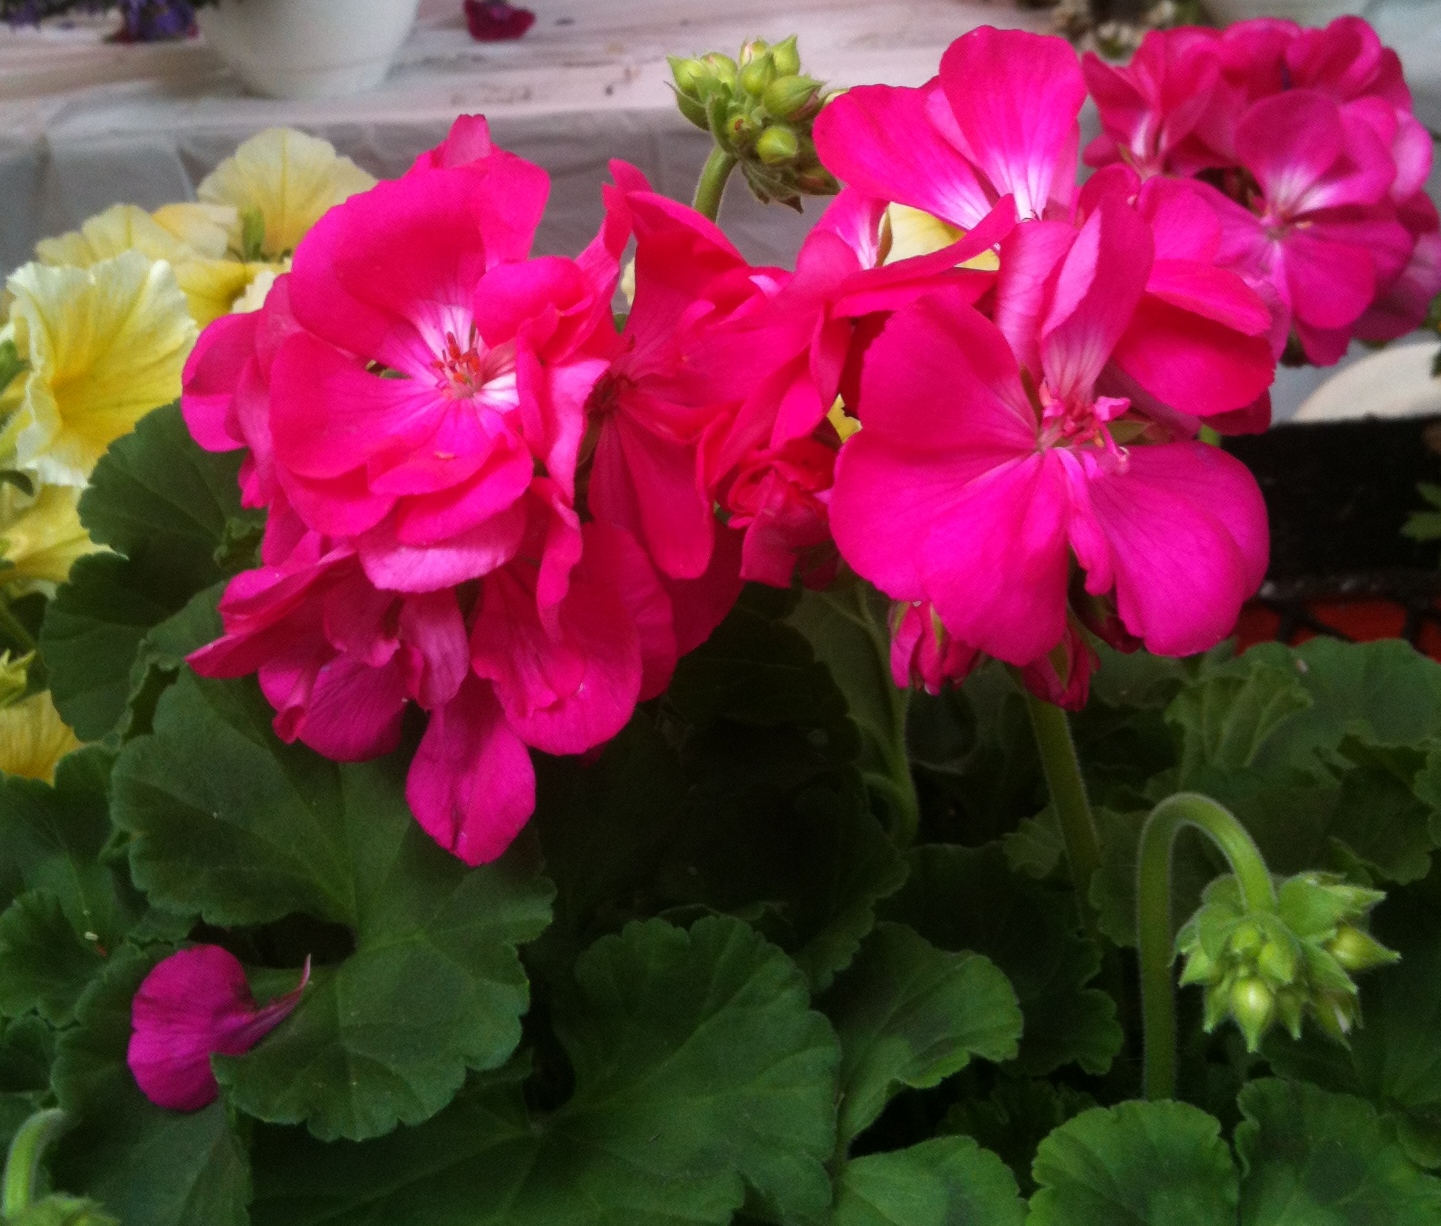 Geraniums at the market